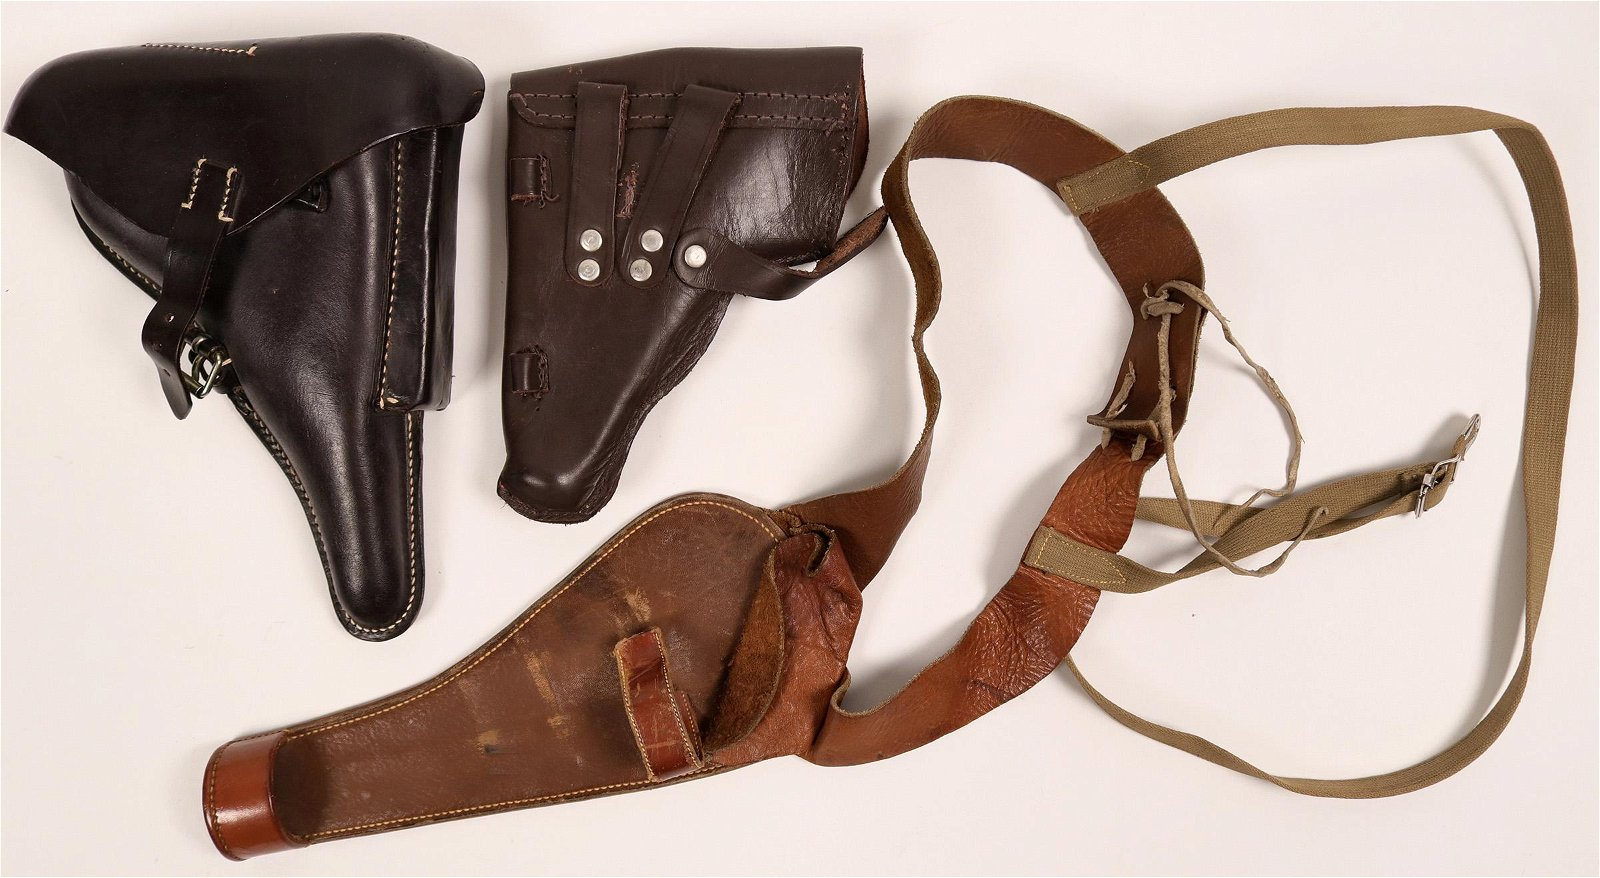 Vintage Leather Pistol Holster Group of 3, with Rare